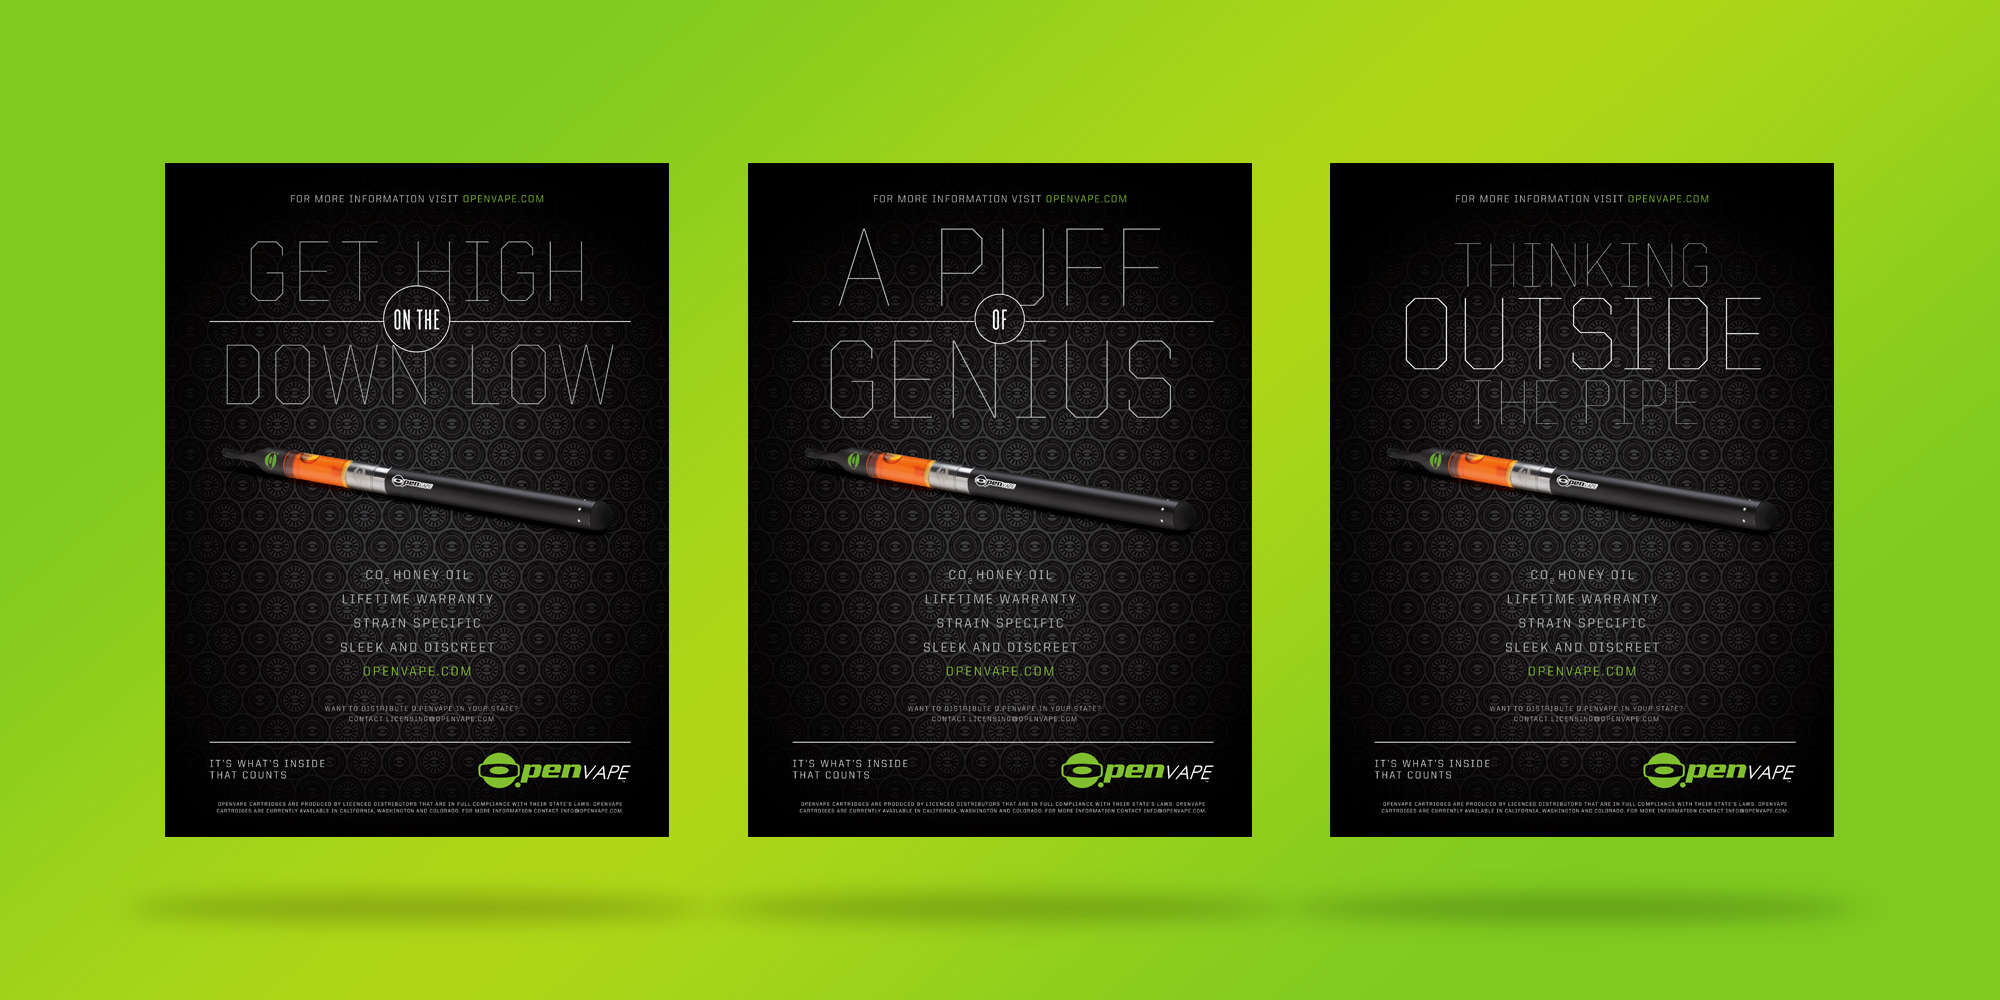 O.Pen Vape Ads